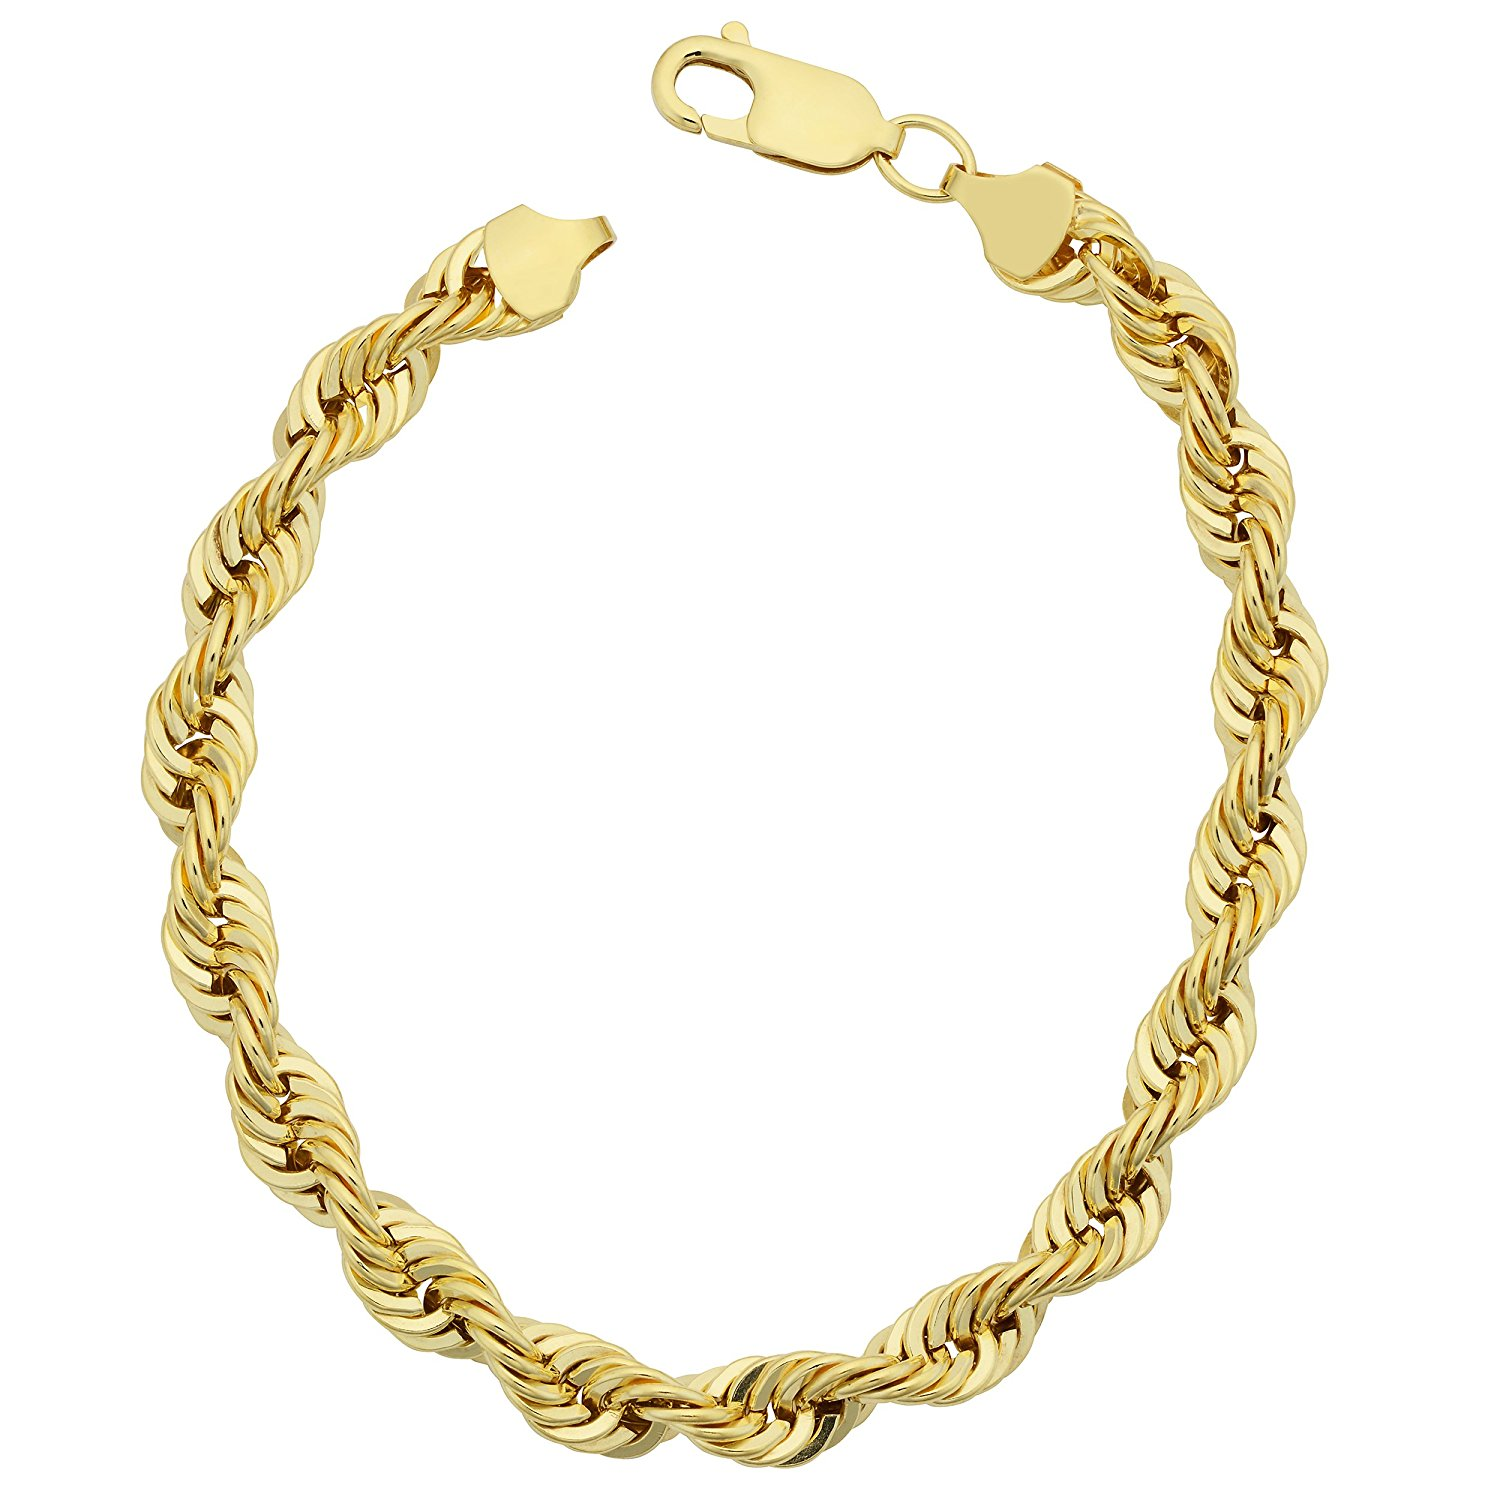 14K Yellow Gold Filled Solid Rope Chain Bracelet, 6.0mm, 8.5″